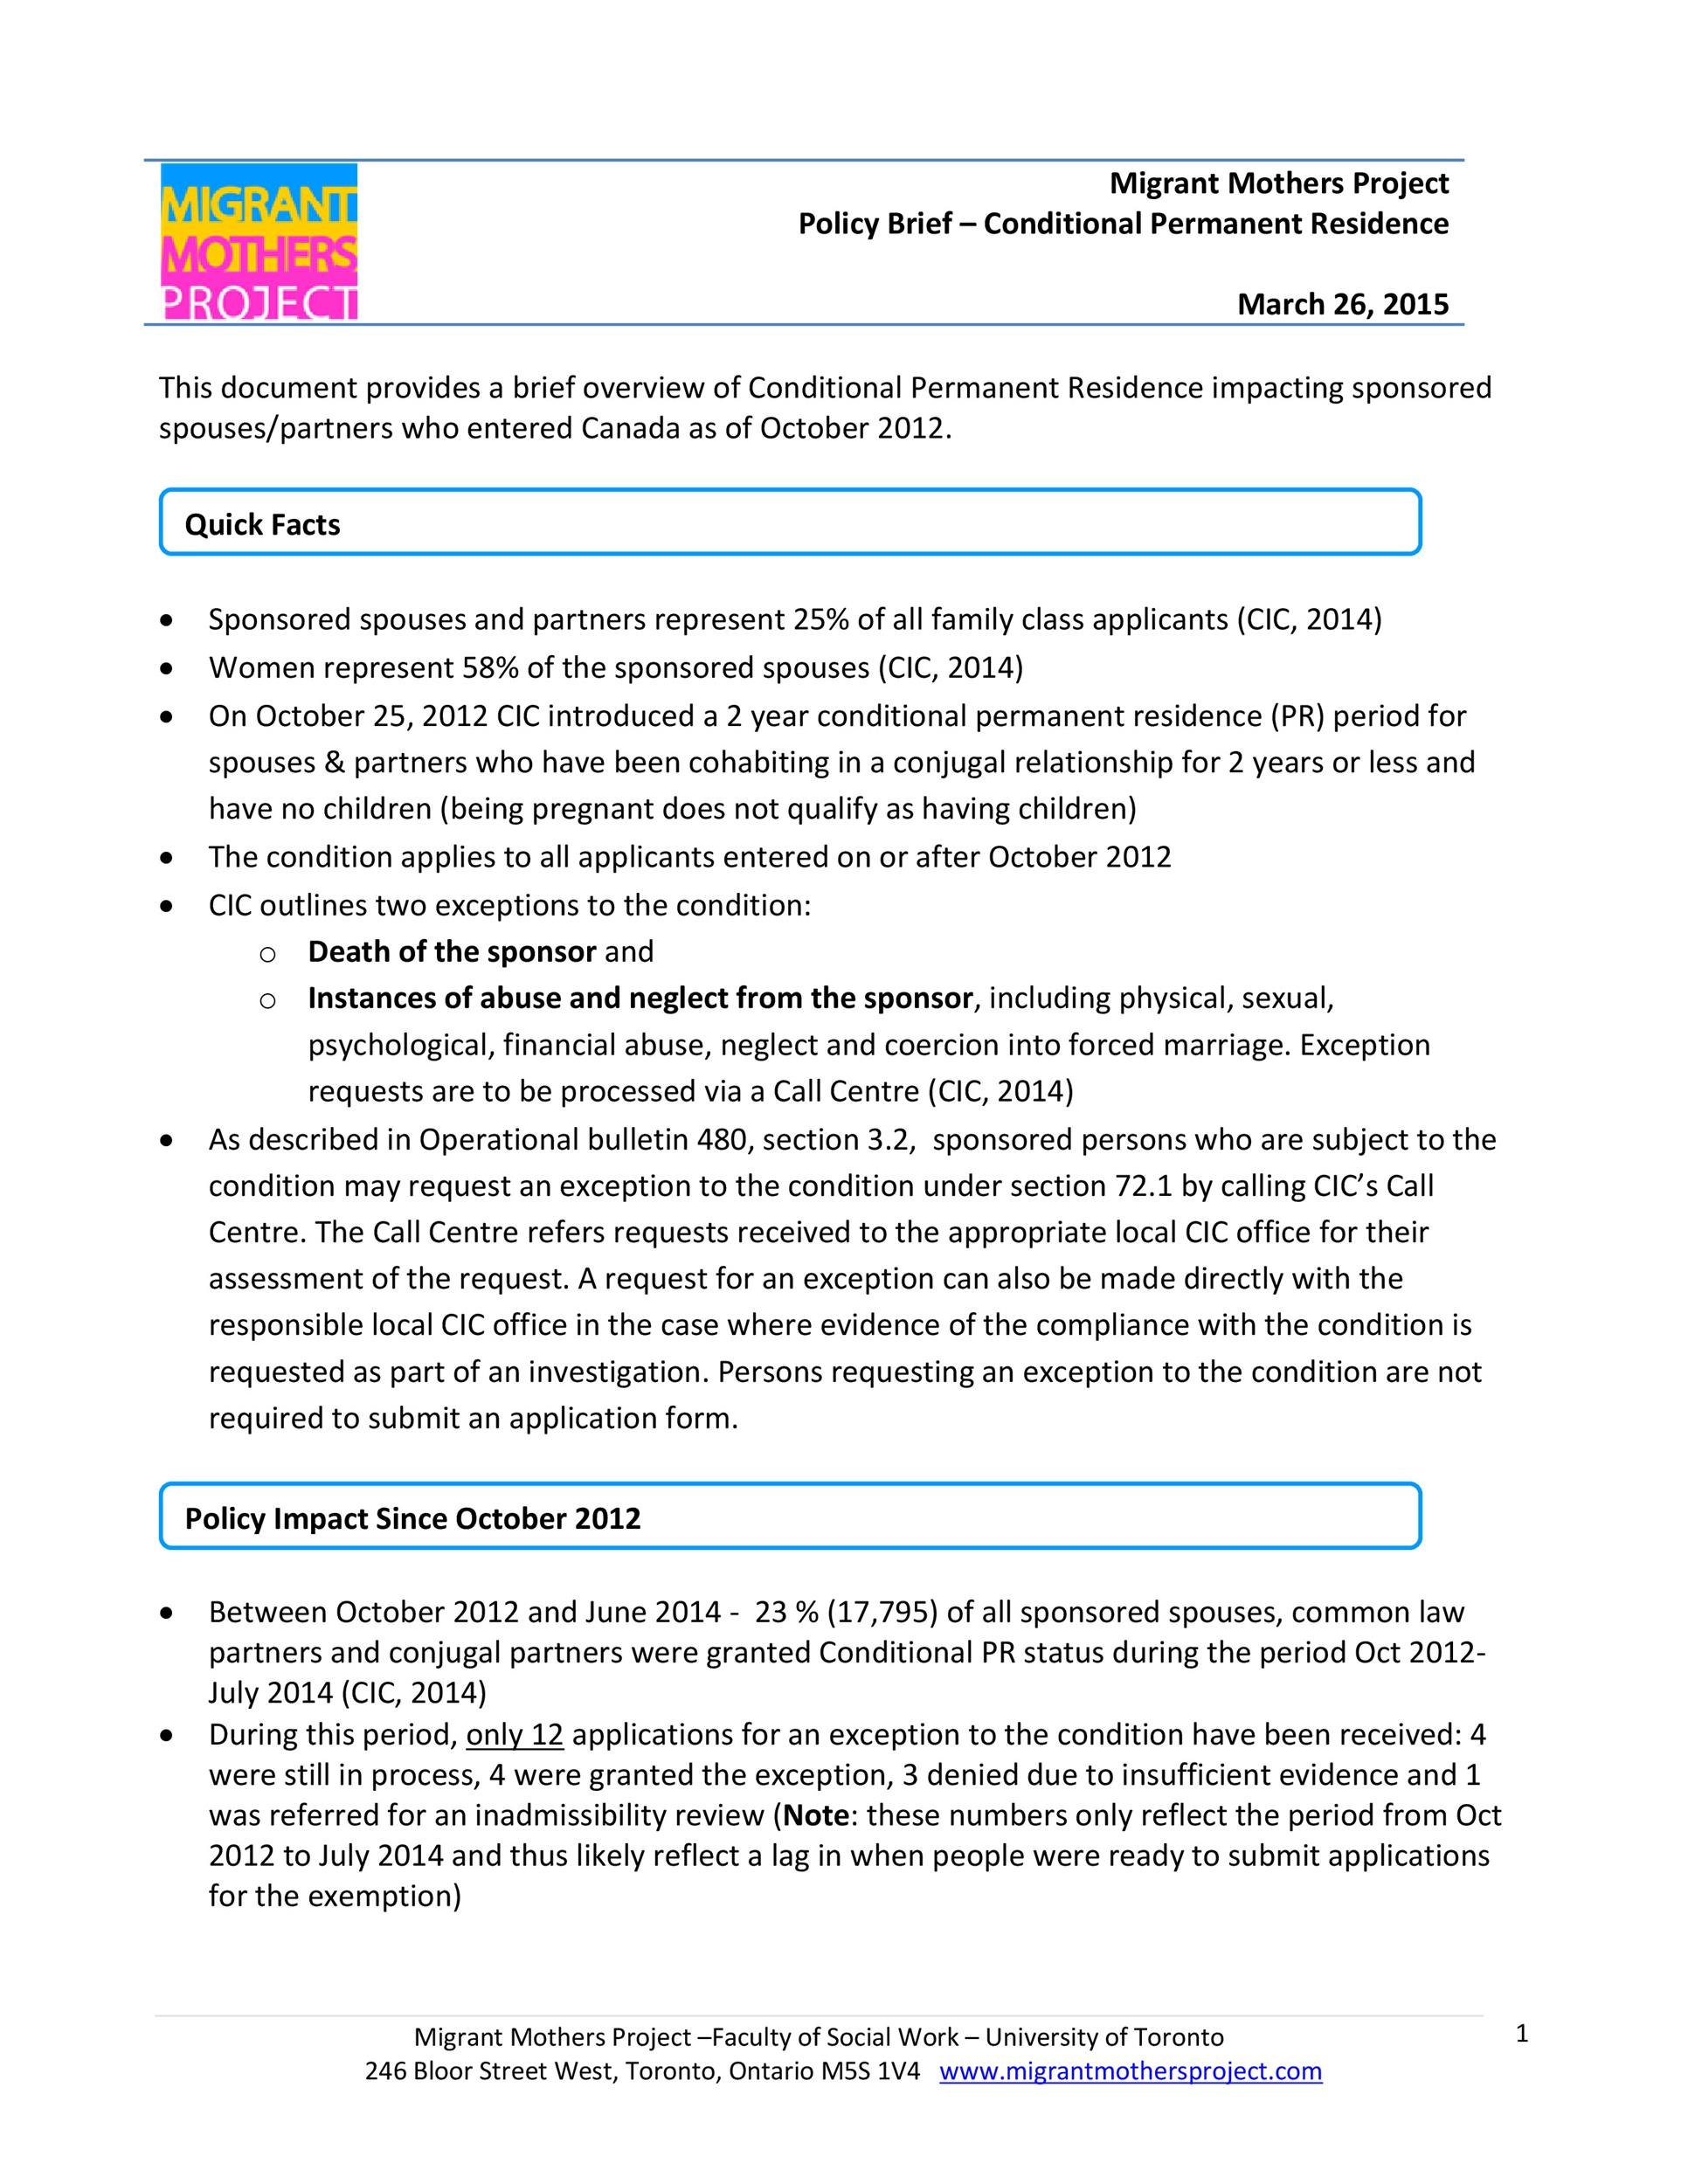 Free policy brief template 16